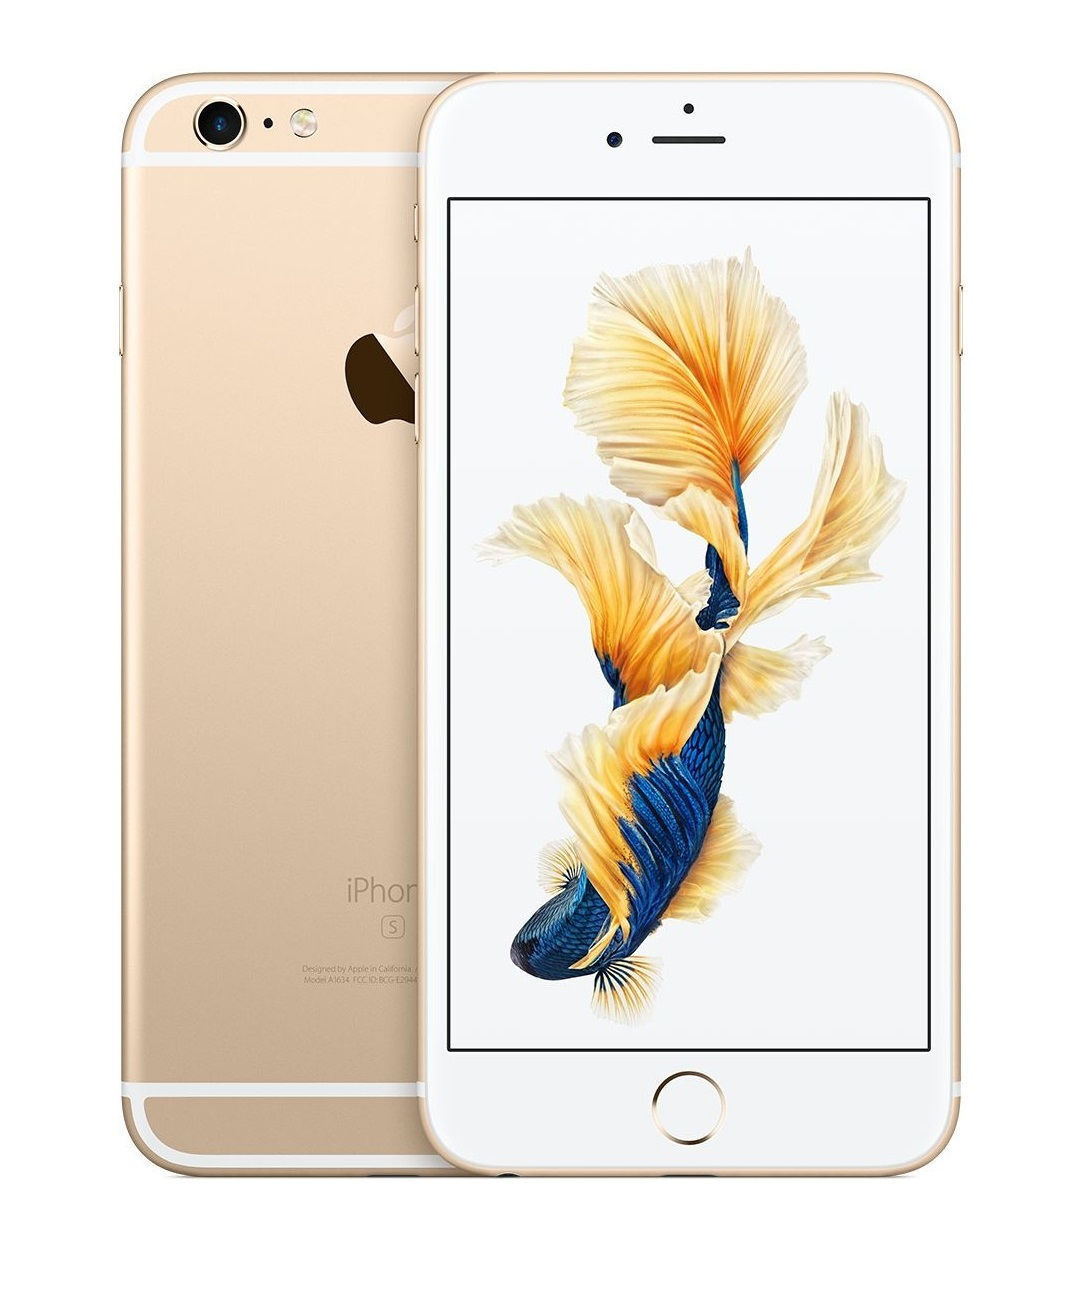 Apple iPhone 6s Plus - 32GB - Gold (Verizon) A1687 (CDMA + GSM)